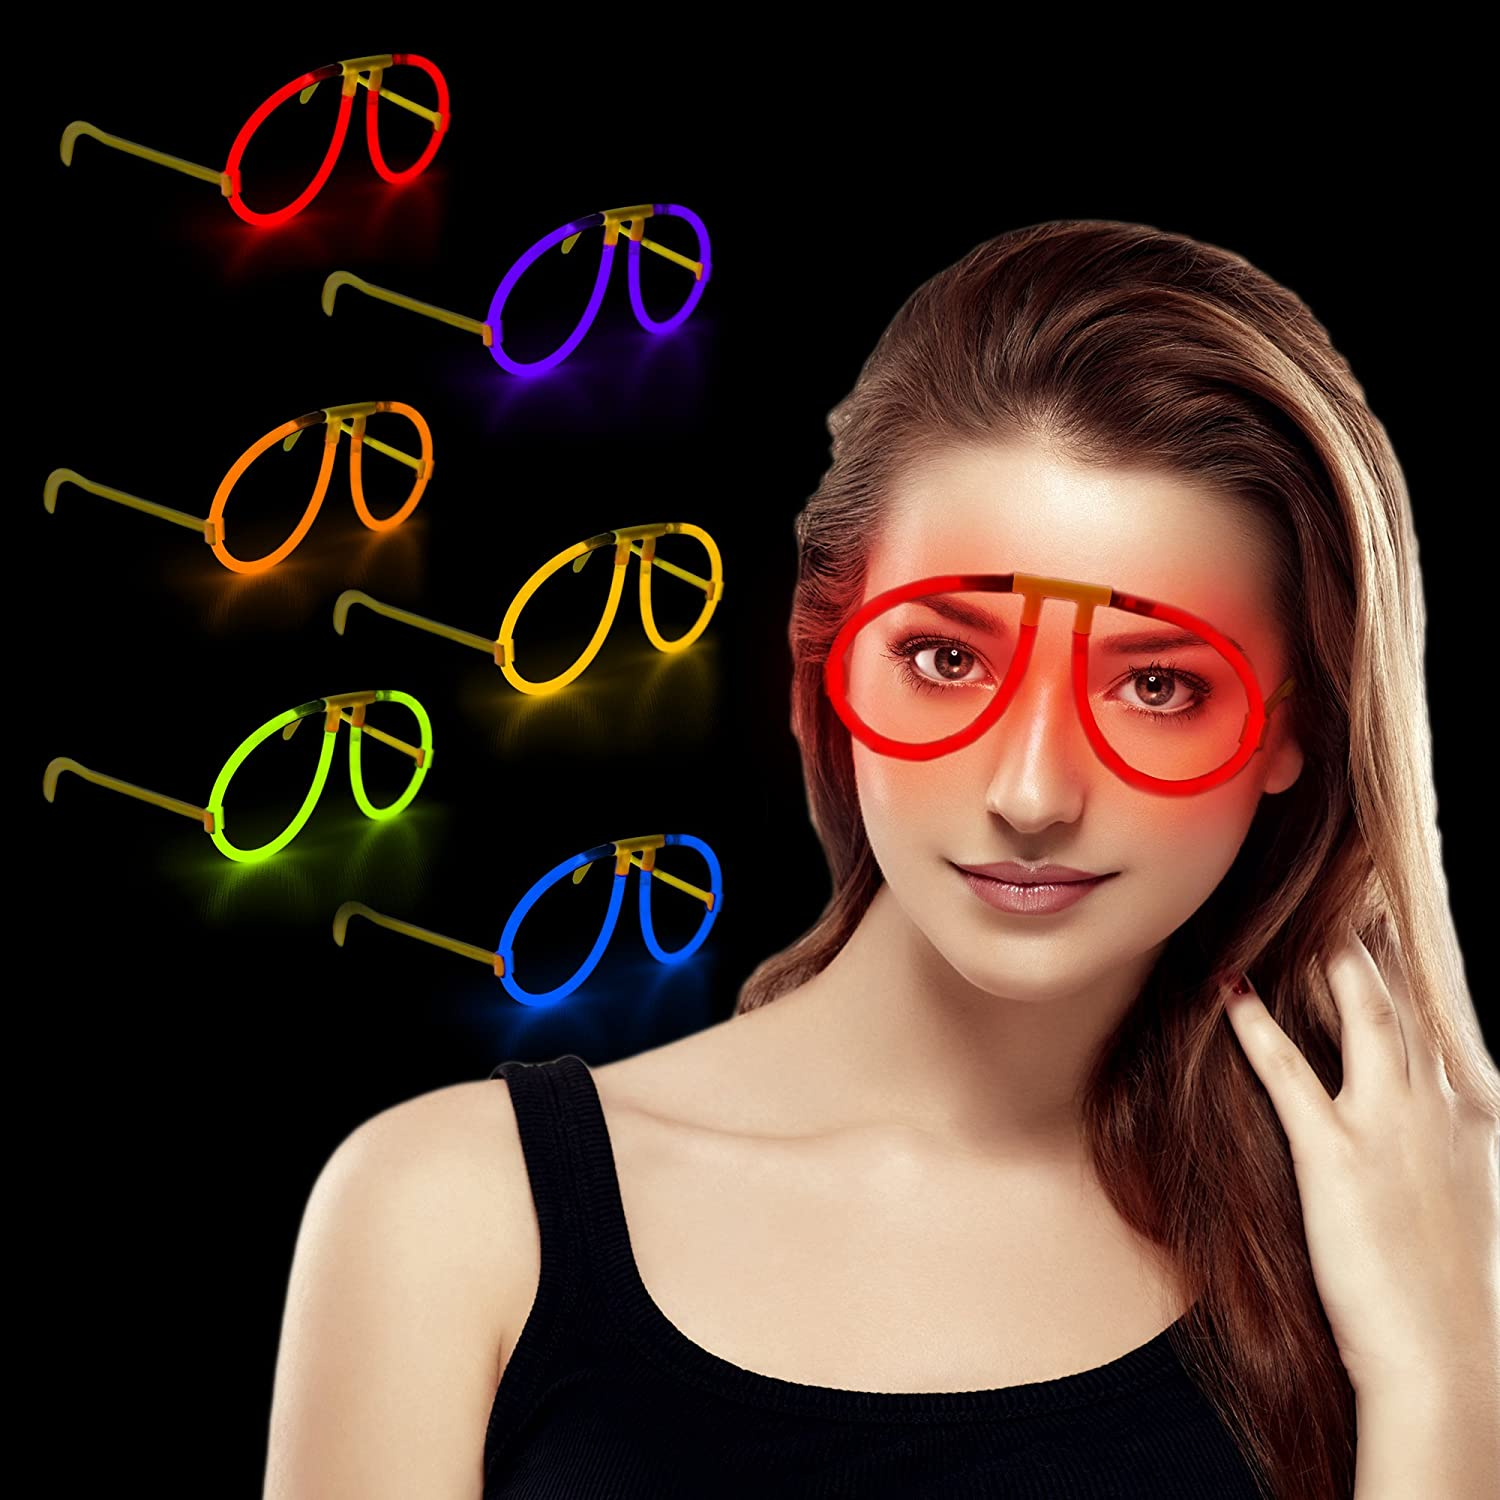 toys light fltr company flashing trading and glasses up games oriental flash glow novelties products headlamps